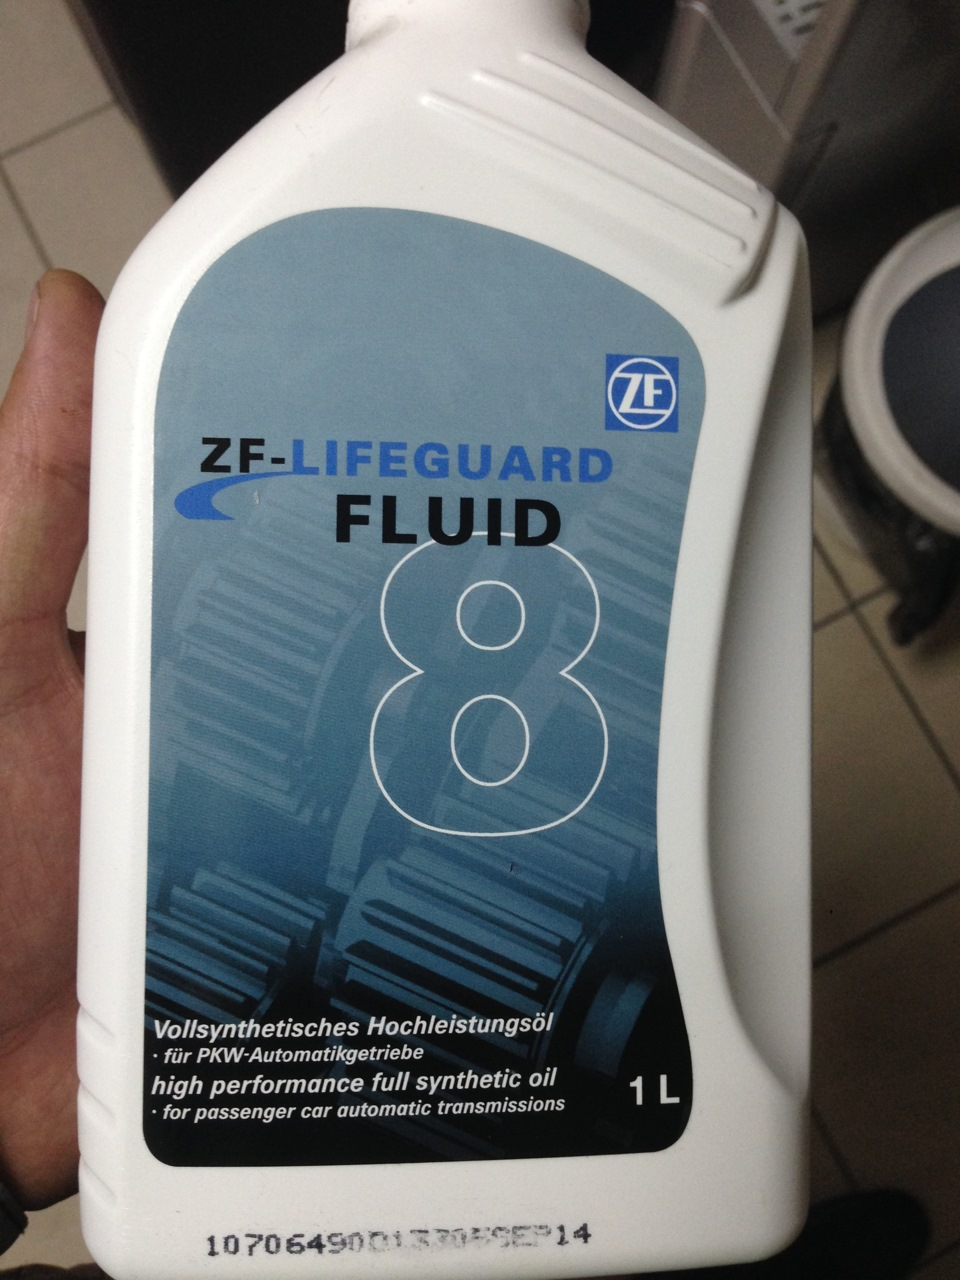 Авалон Авто - Масло трансм  ZF LIFEGUARD FLUID 8 1L